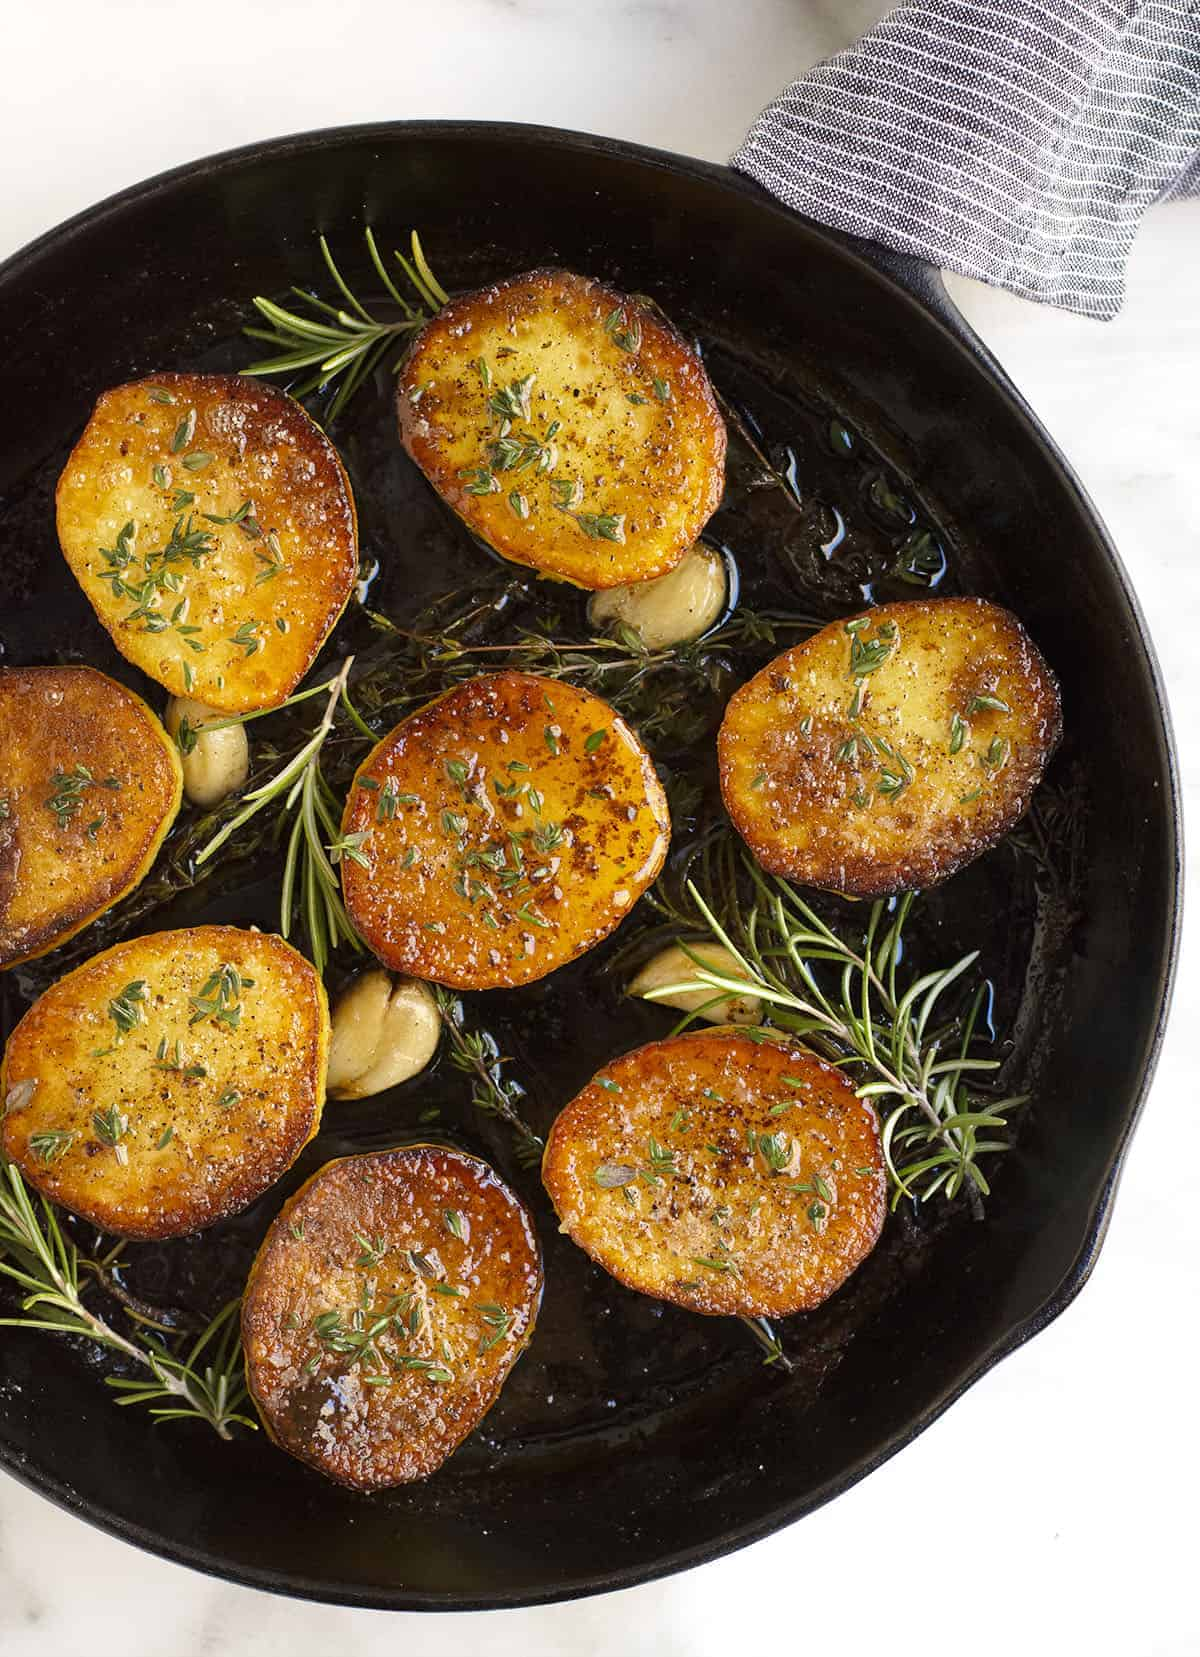 Fondant Potatoes in a cast iron skillet photographed from above